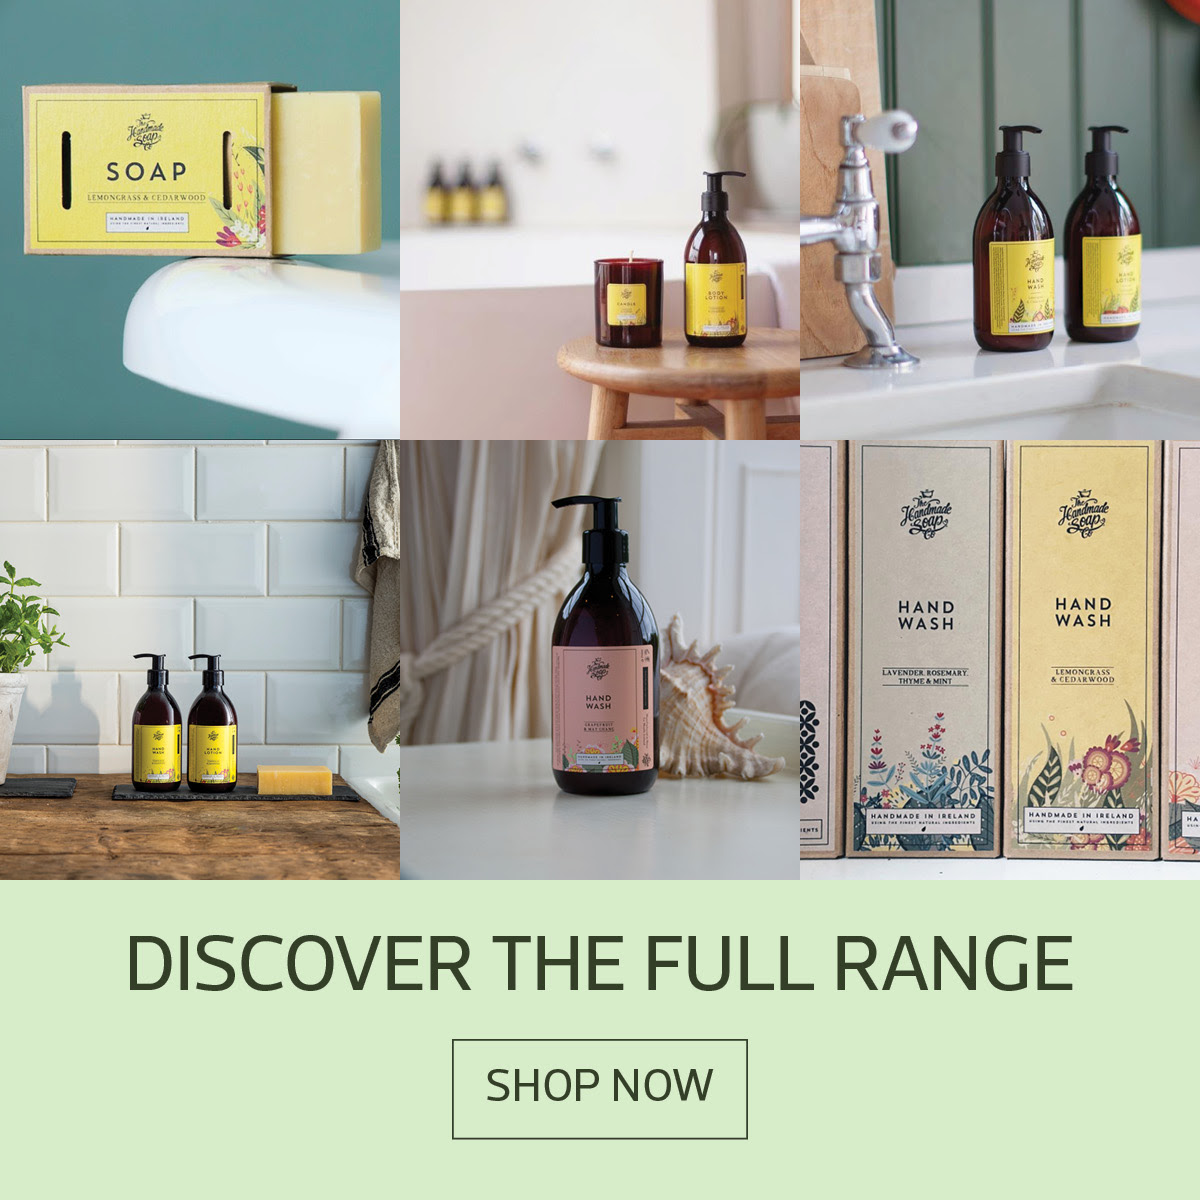 Kilkenny Shop - Lather, Rinse, Repeat!